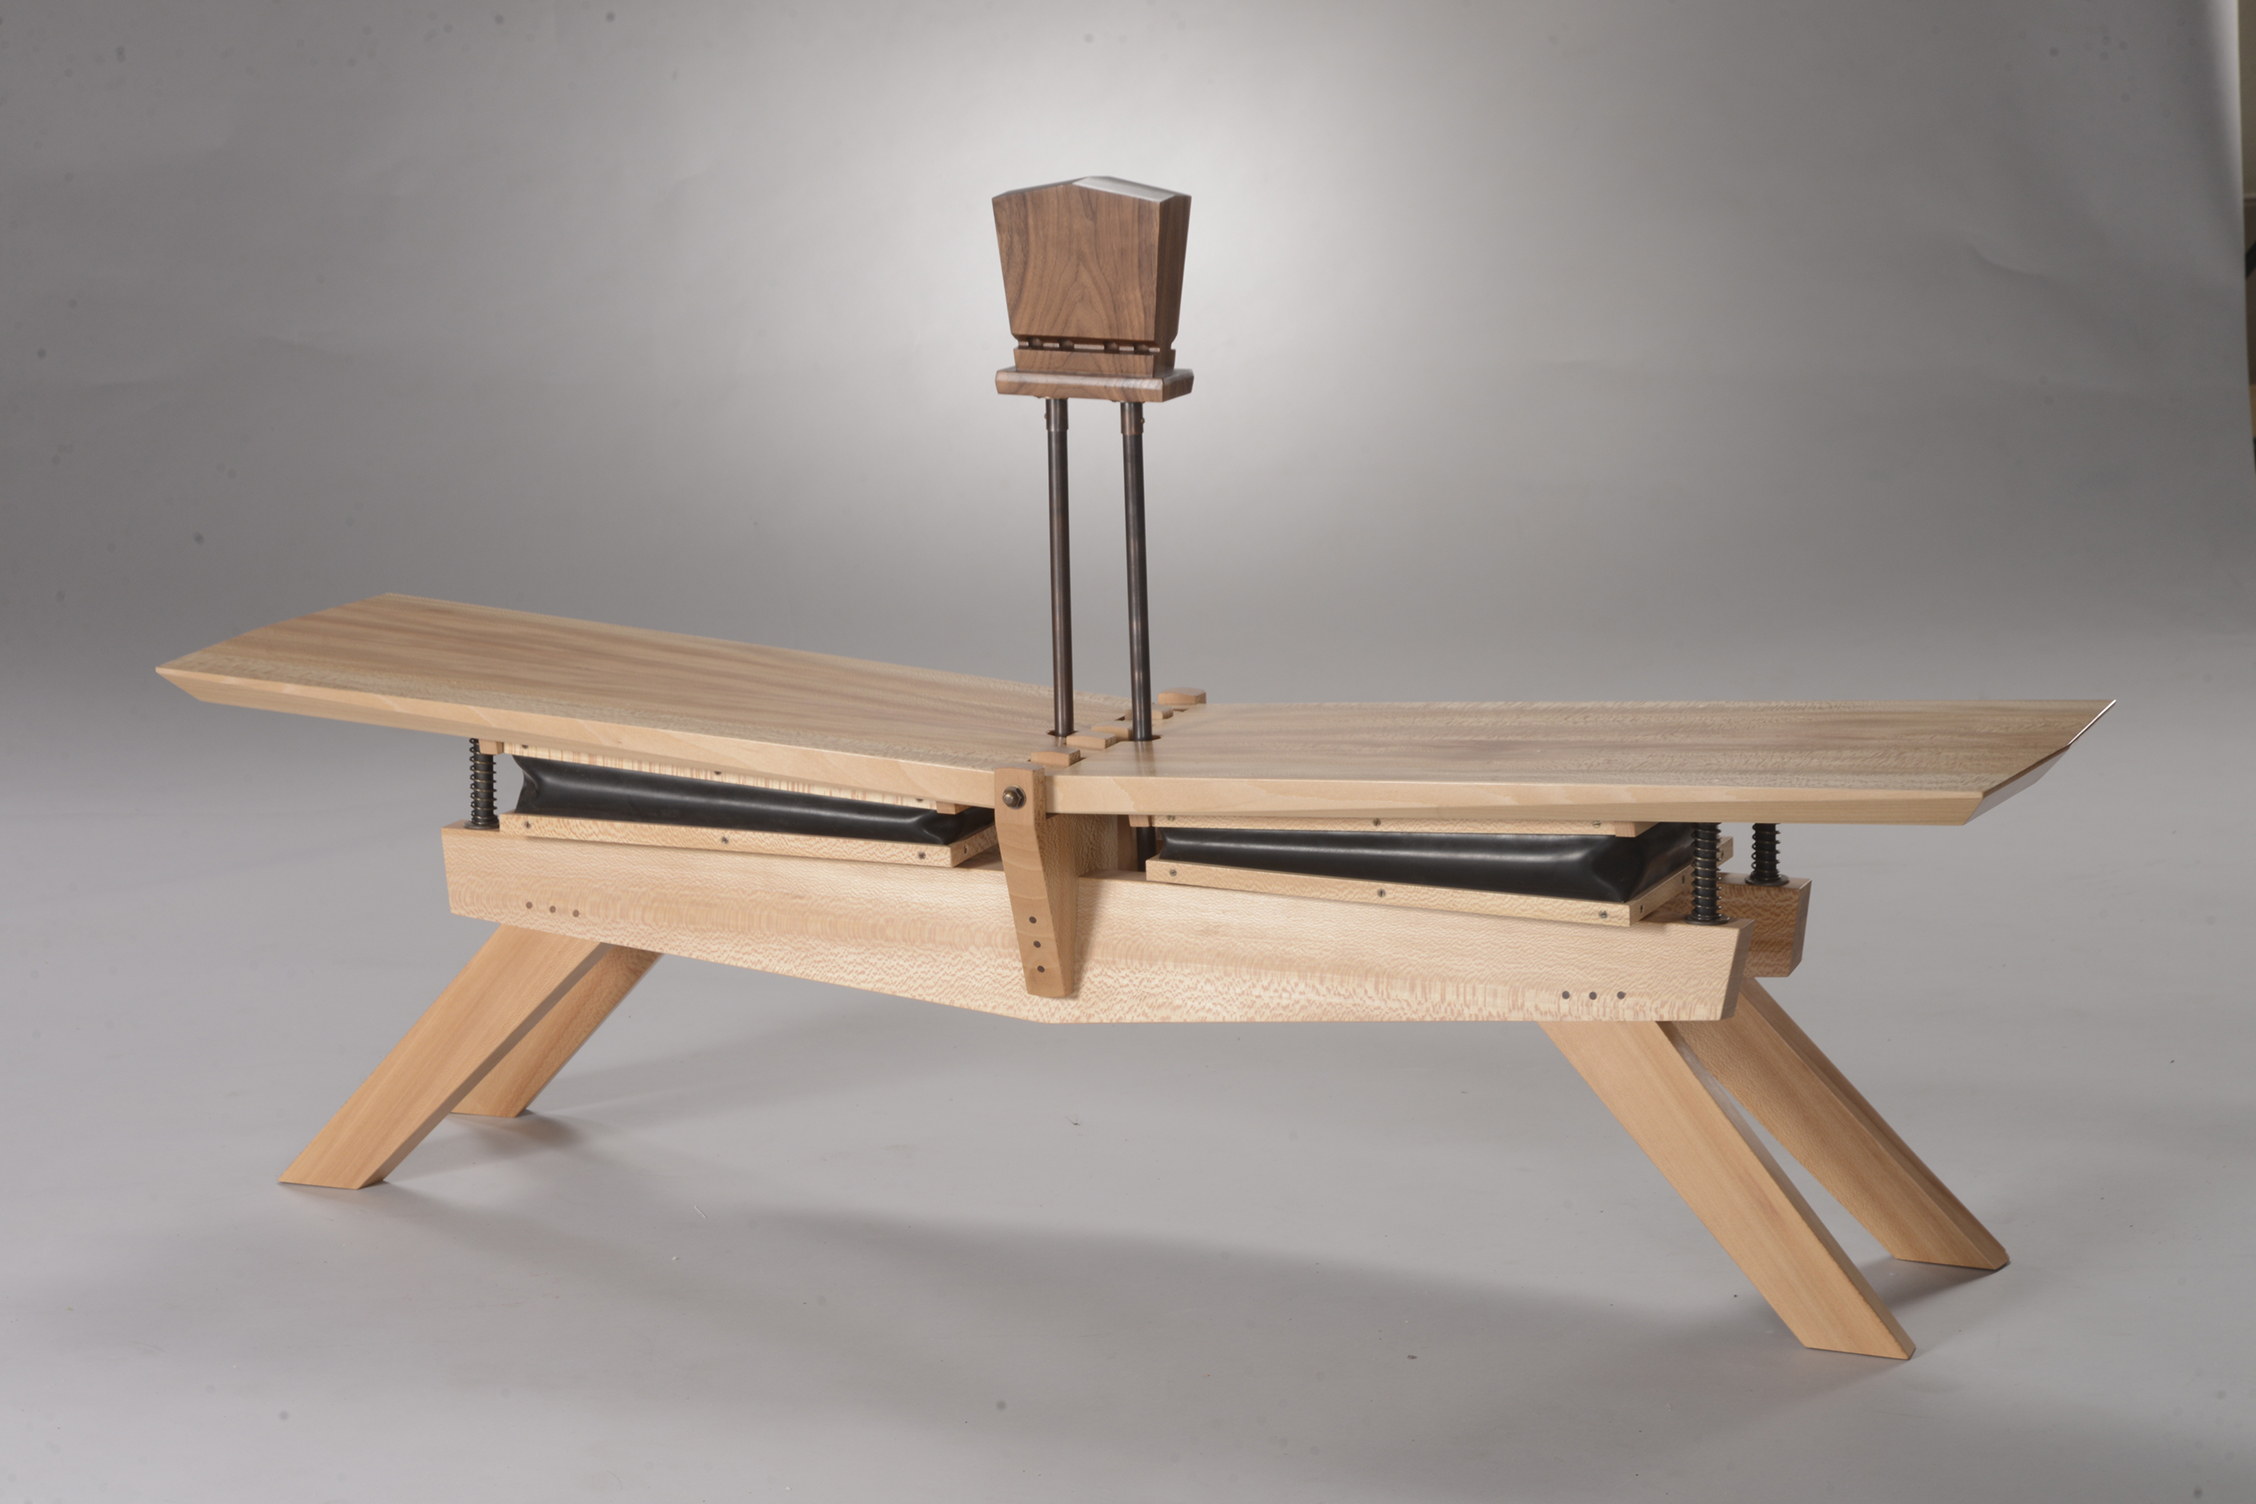 """Sit and Play a Tune"" (quartersawn sycamore, walnut, copper, brass, rubber) by Matthew Obbink"